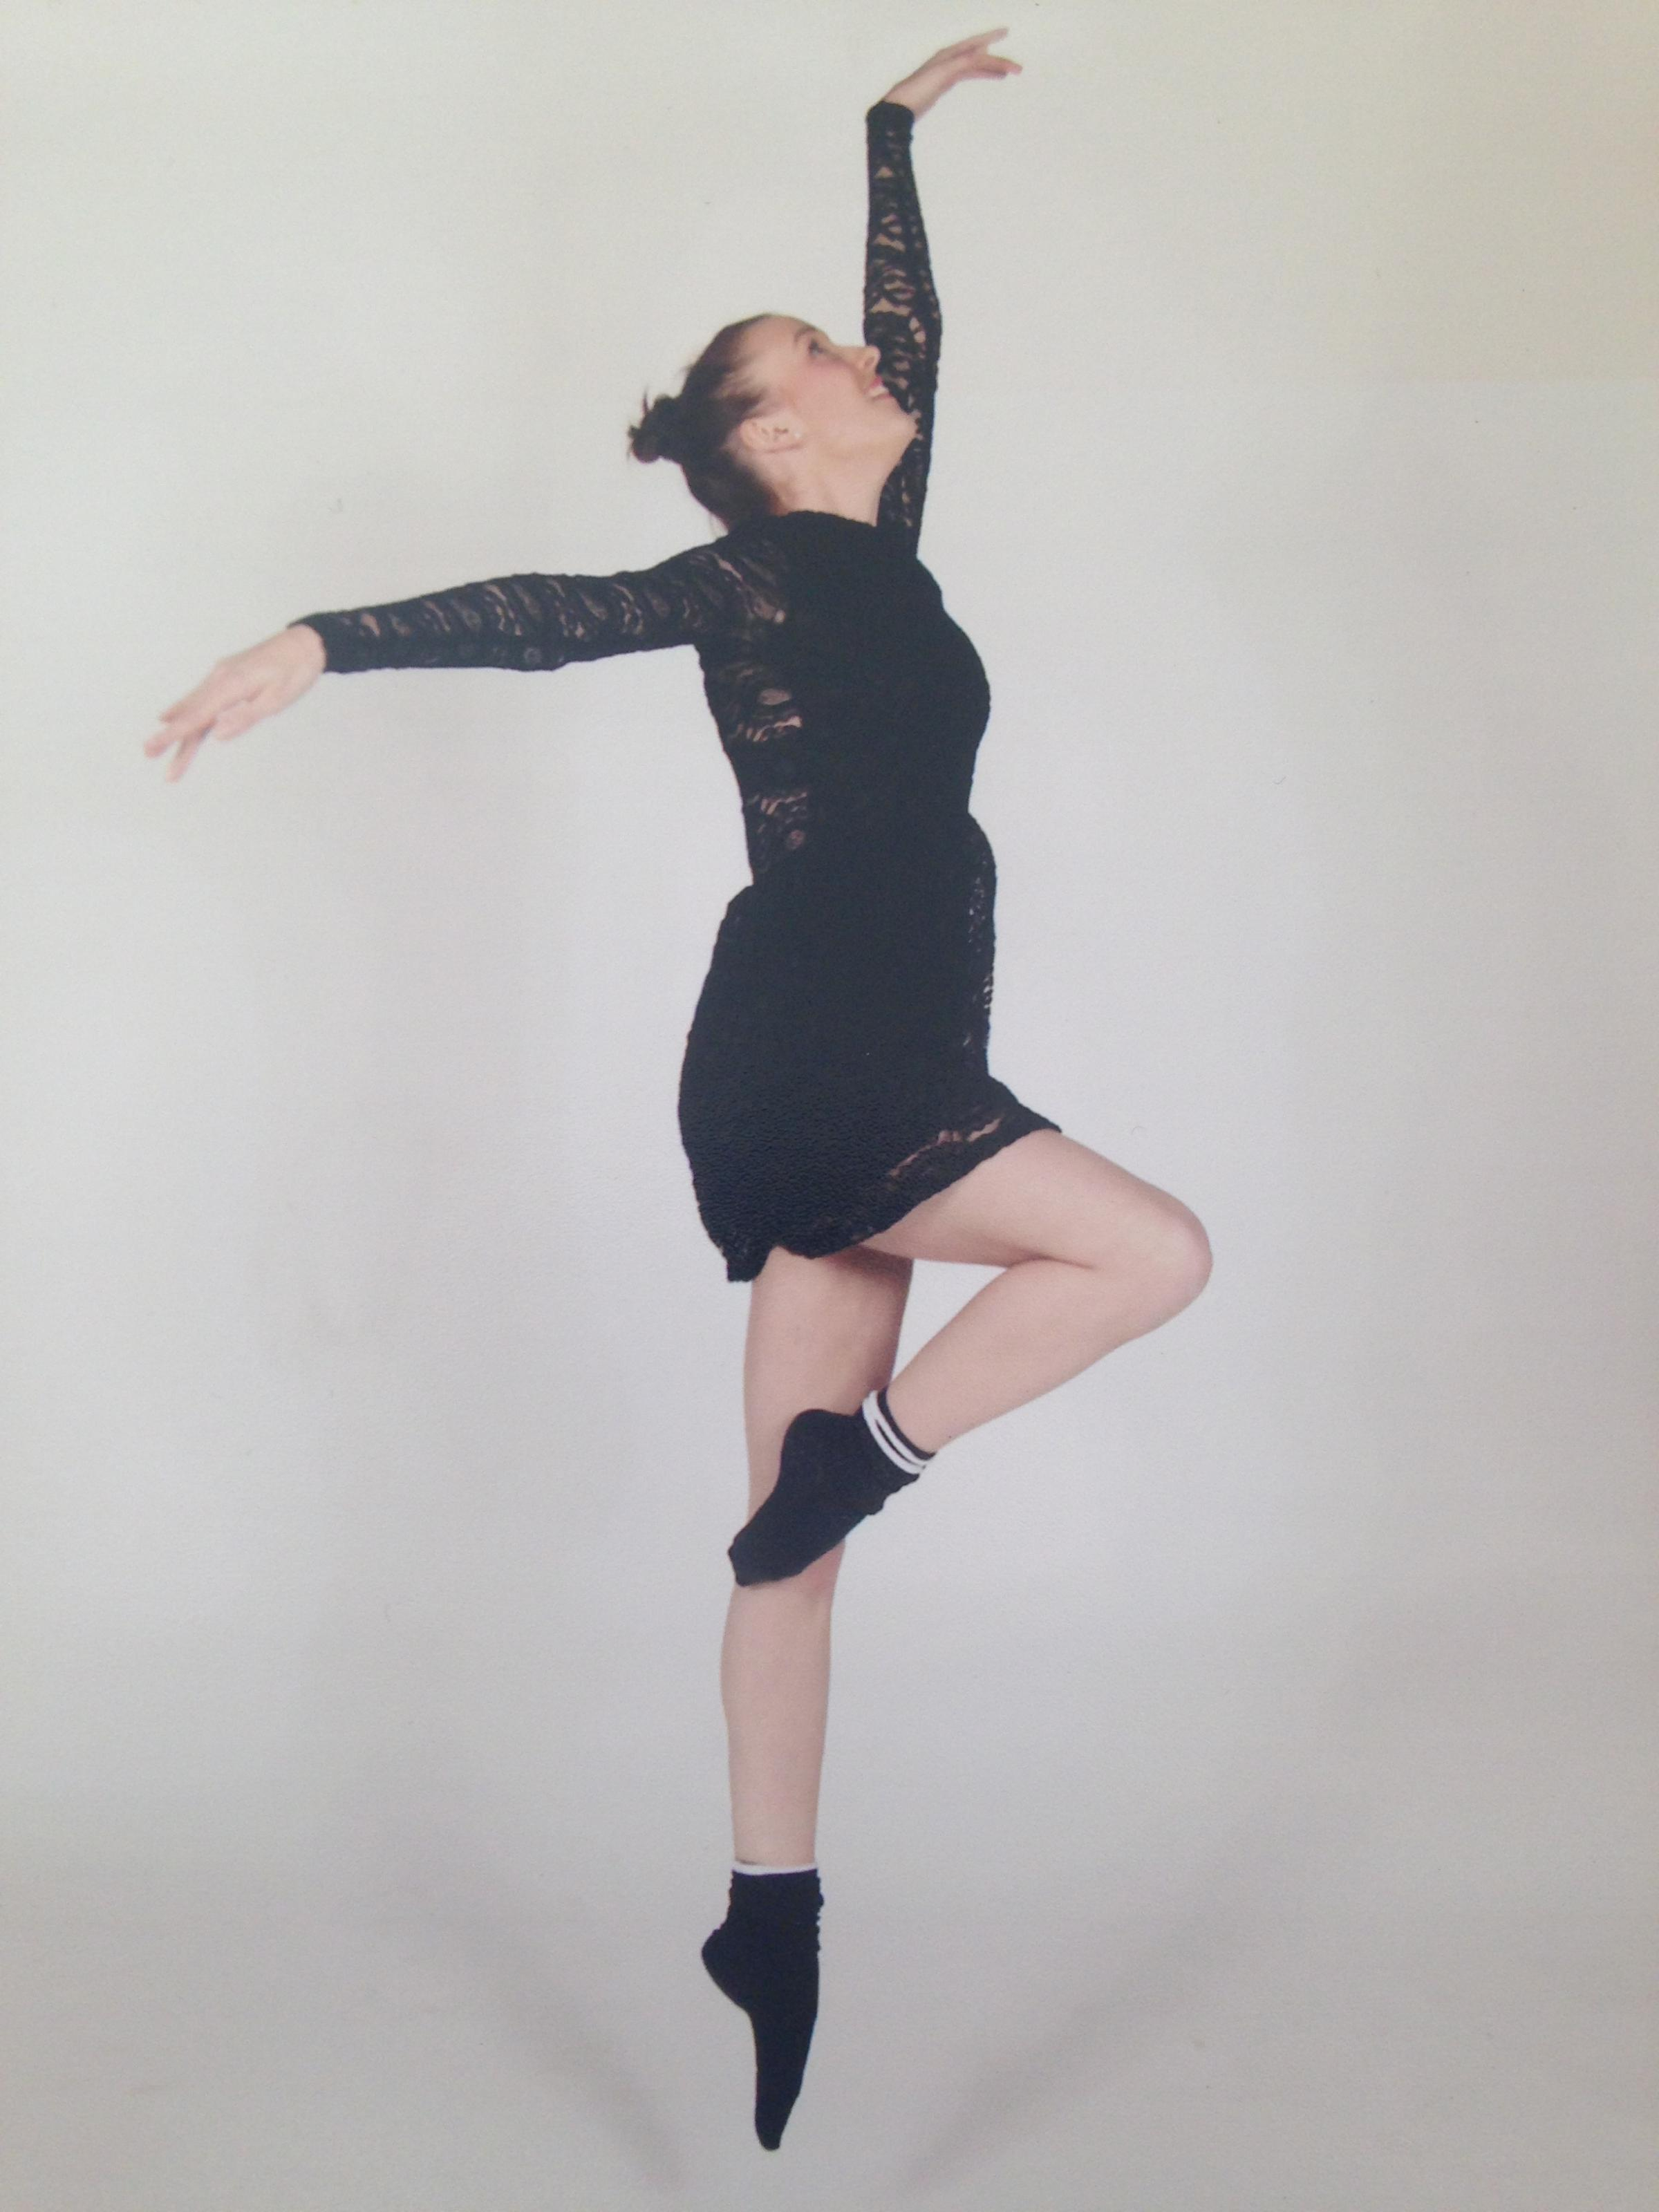 Penarth dancer selected for summer training course